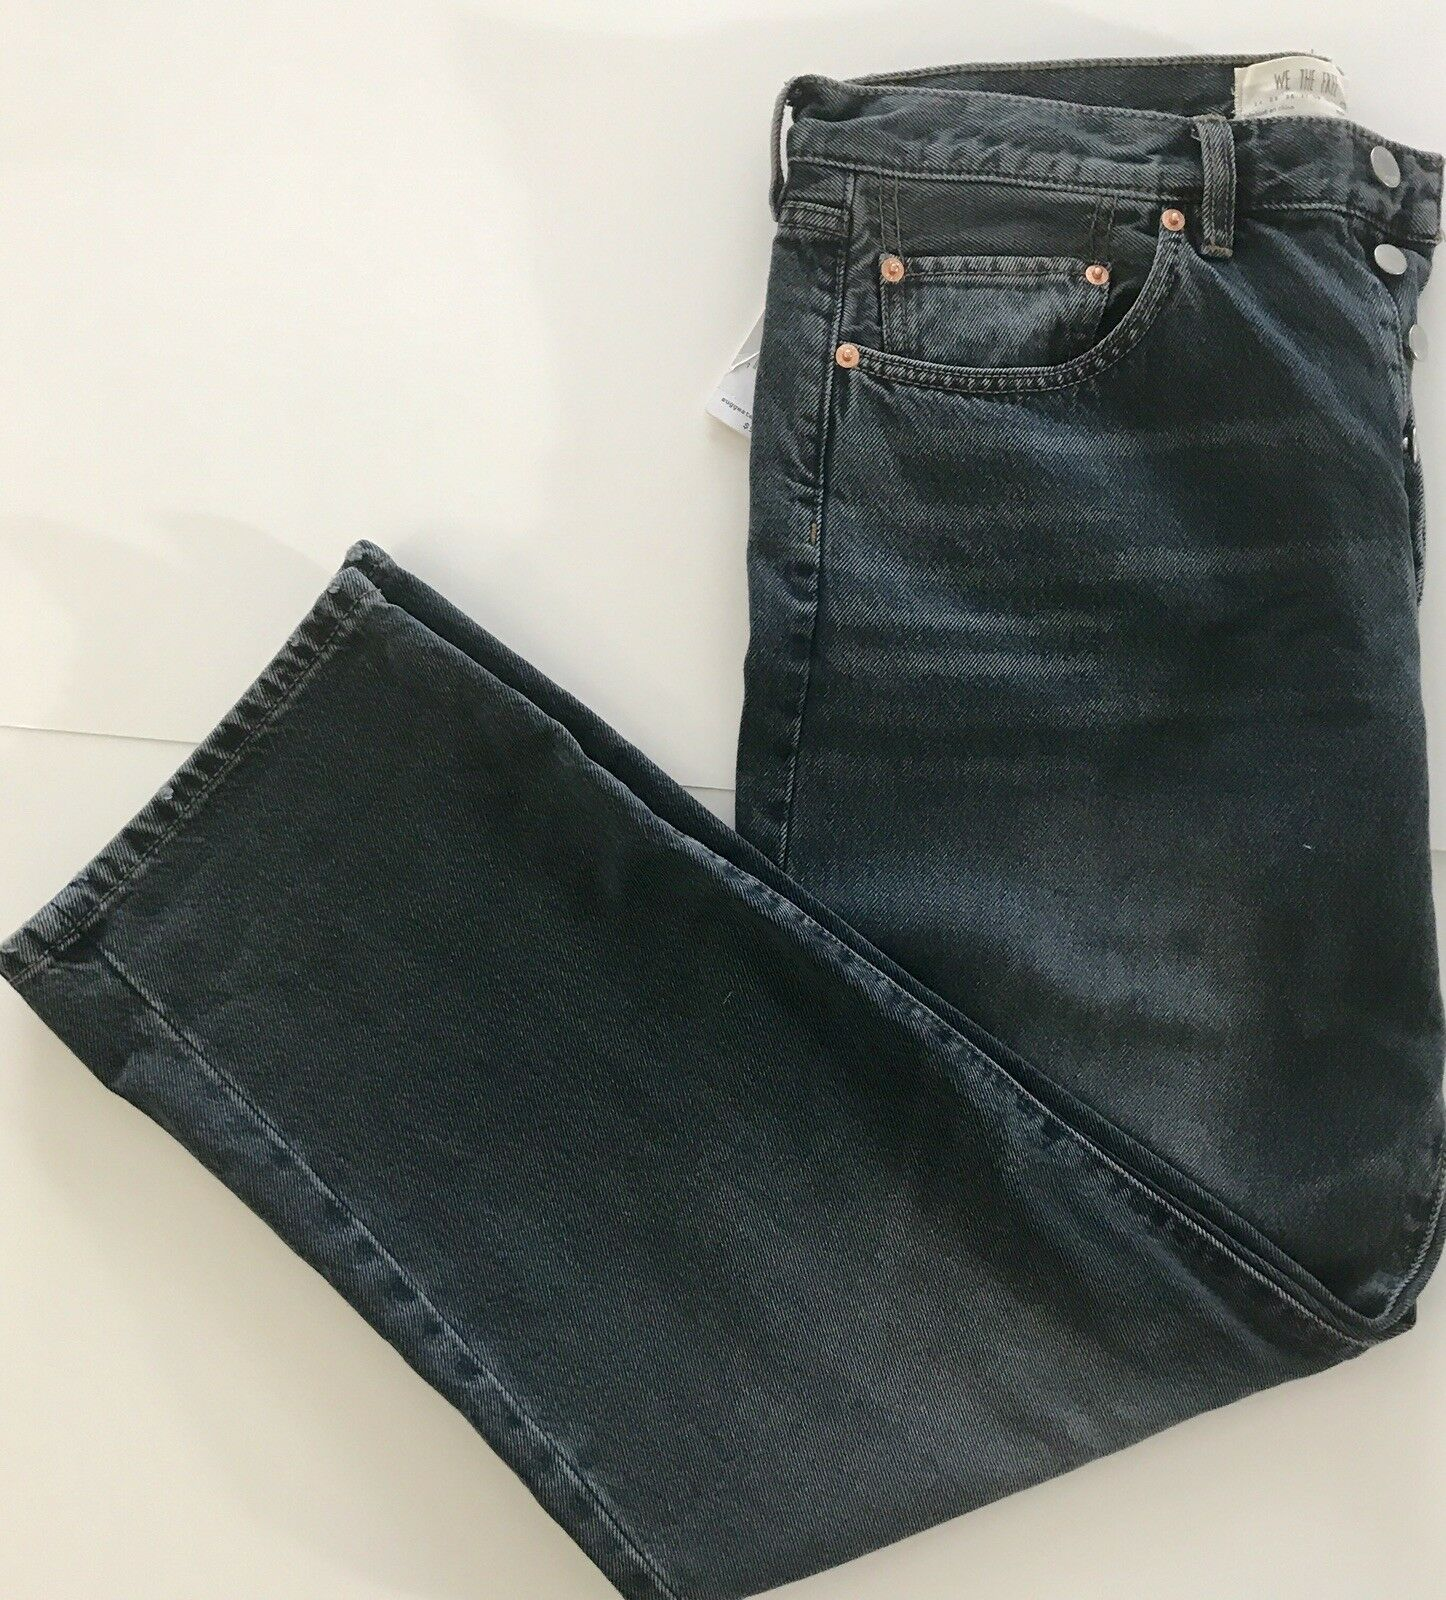 Free People Women's Jeans, Westminister bluee, Button Fly, Size 28, NWT